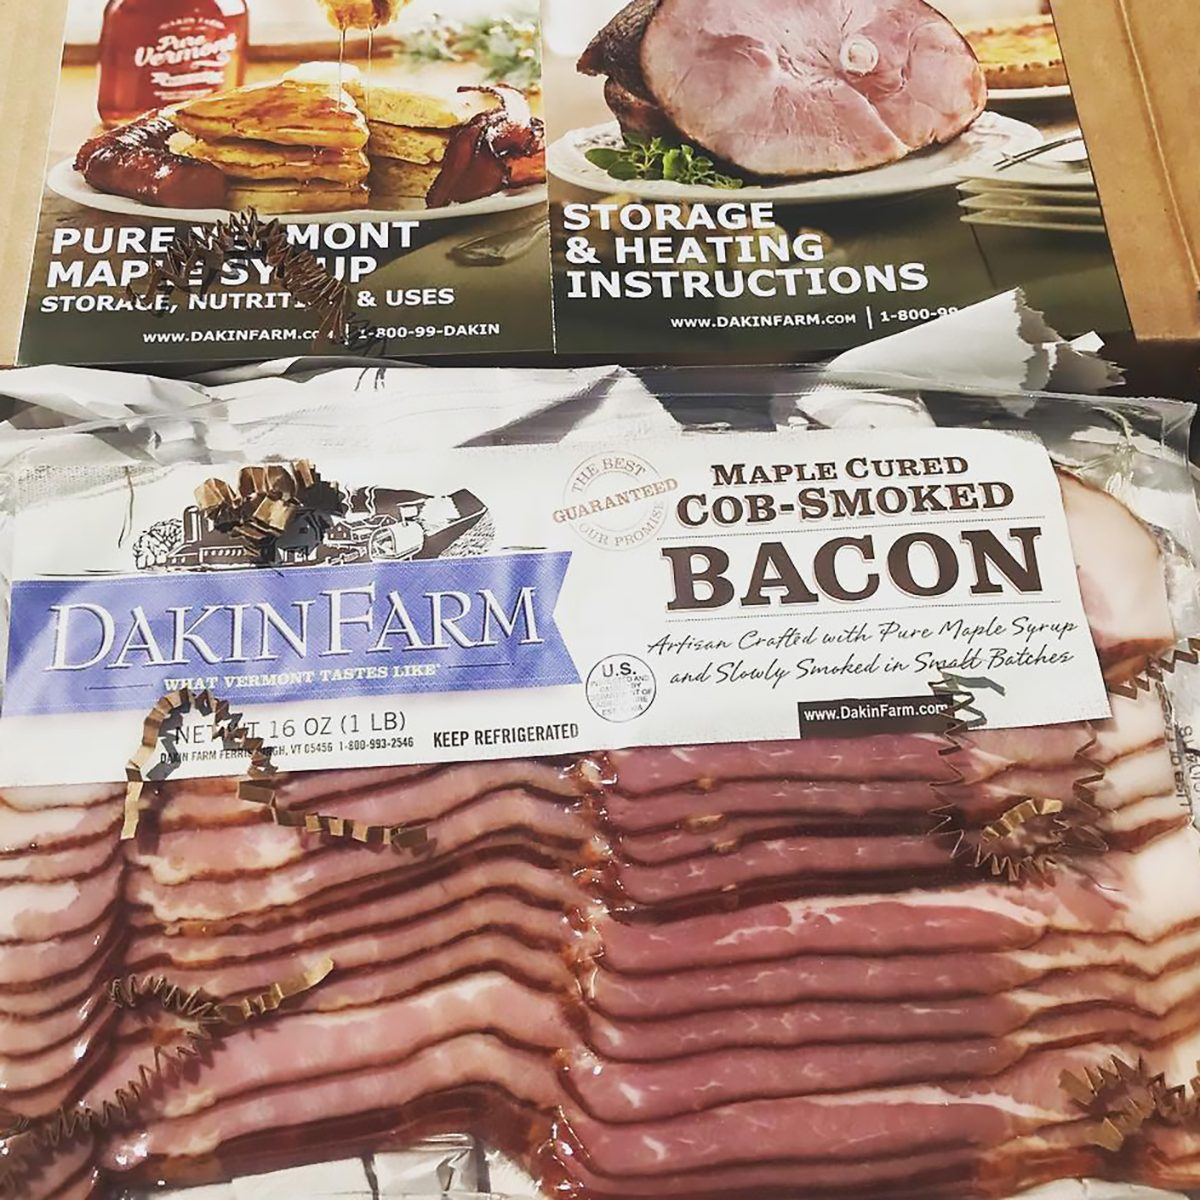 Best Bacon of Vermont